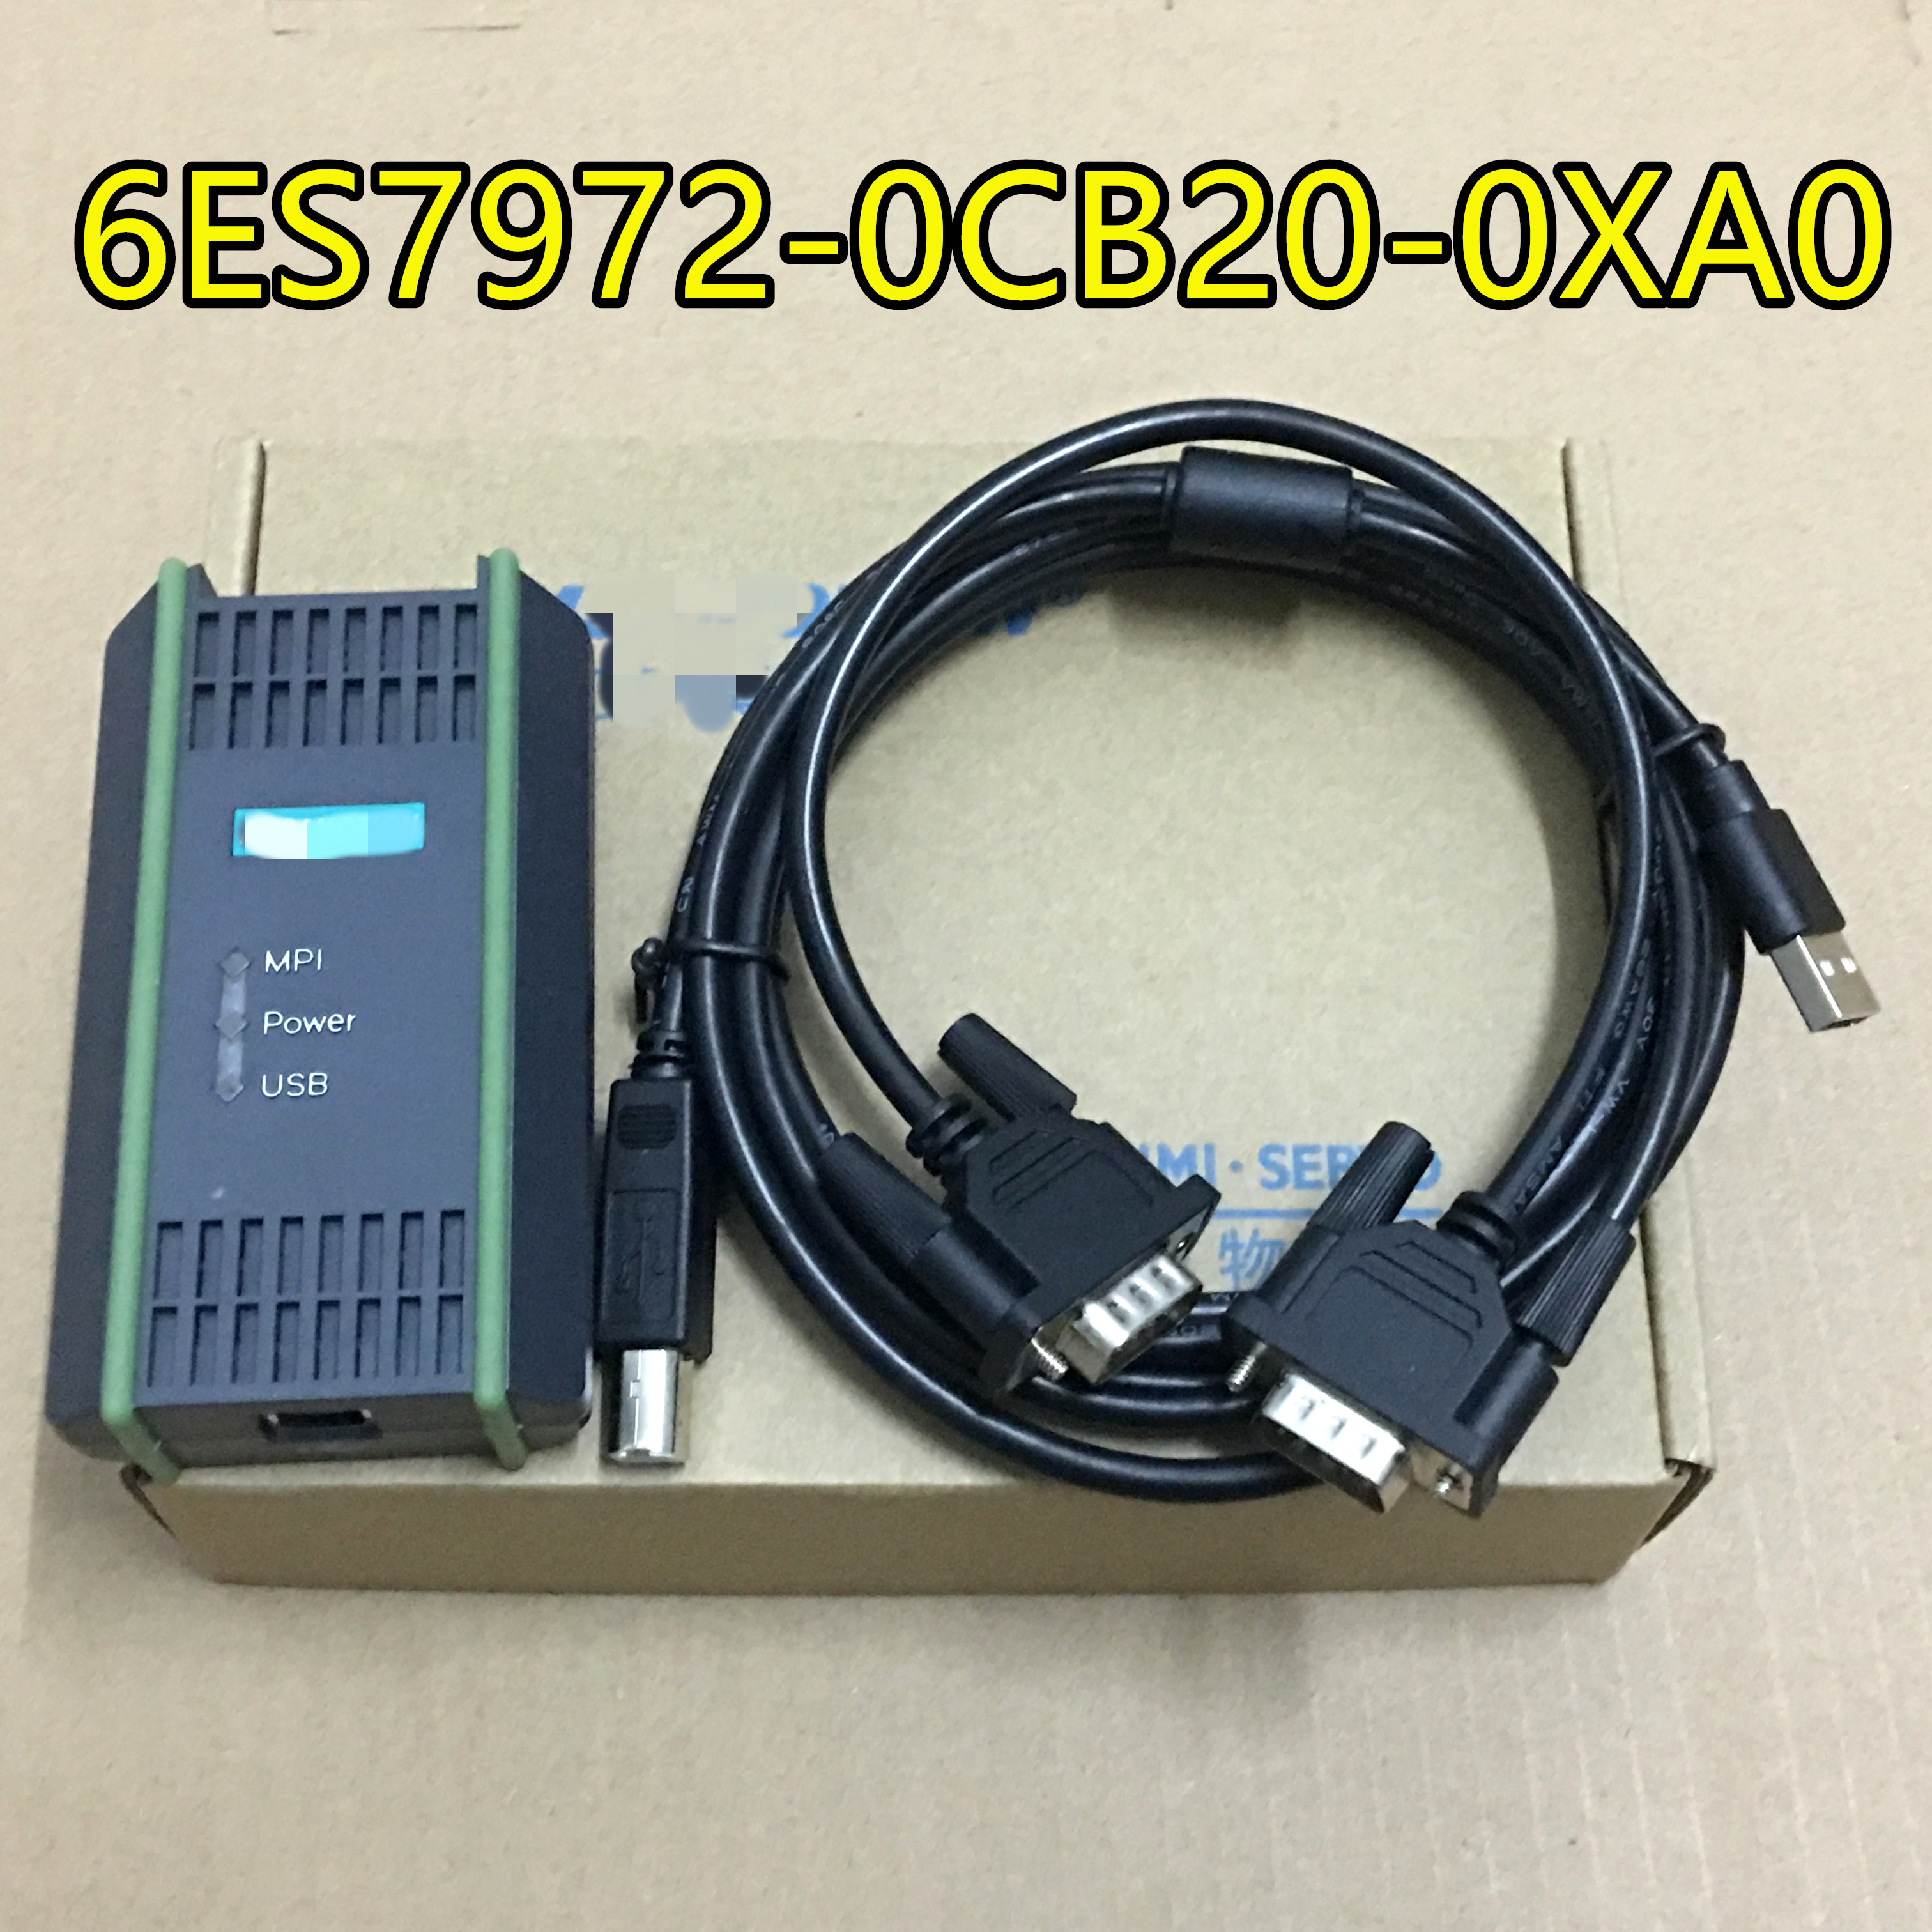 For Siemens 6ES7972-0CB20-0XA0 PC Adapter USB Cable Adapter  S7-200/300/400 RS485 Profibus/MPI/PPI 9-pin Replace